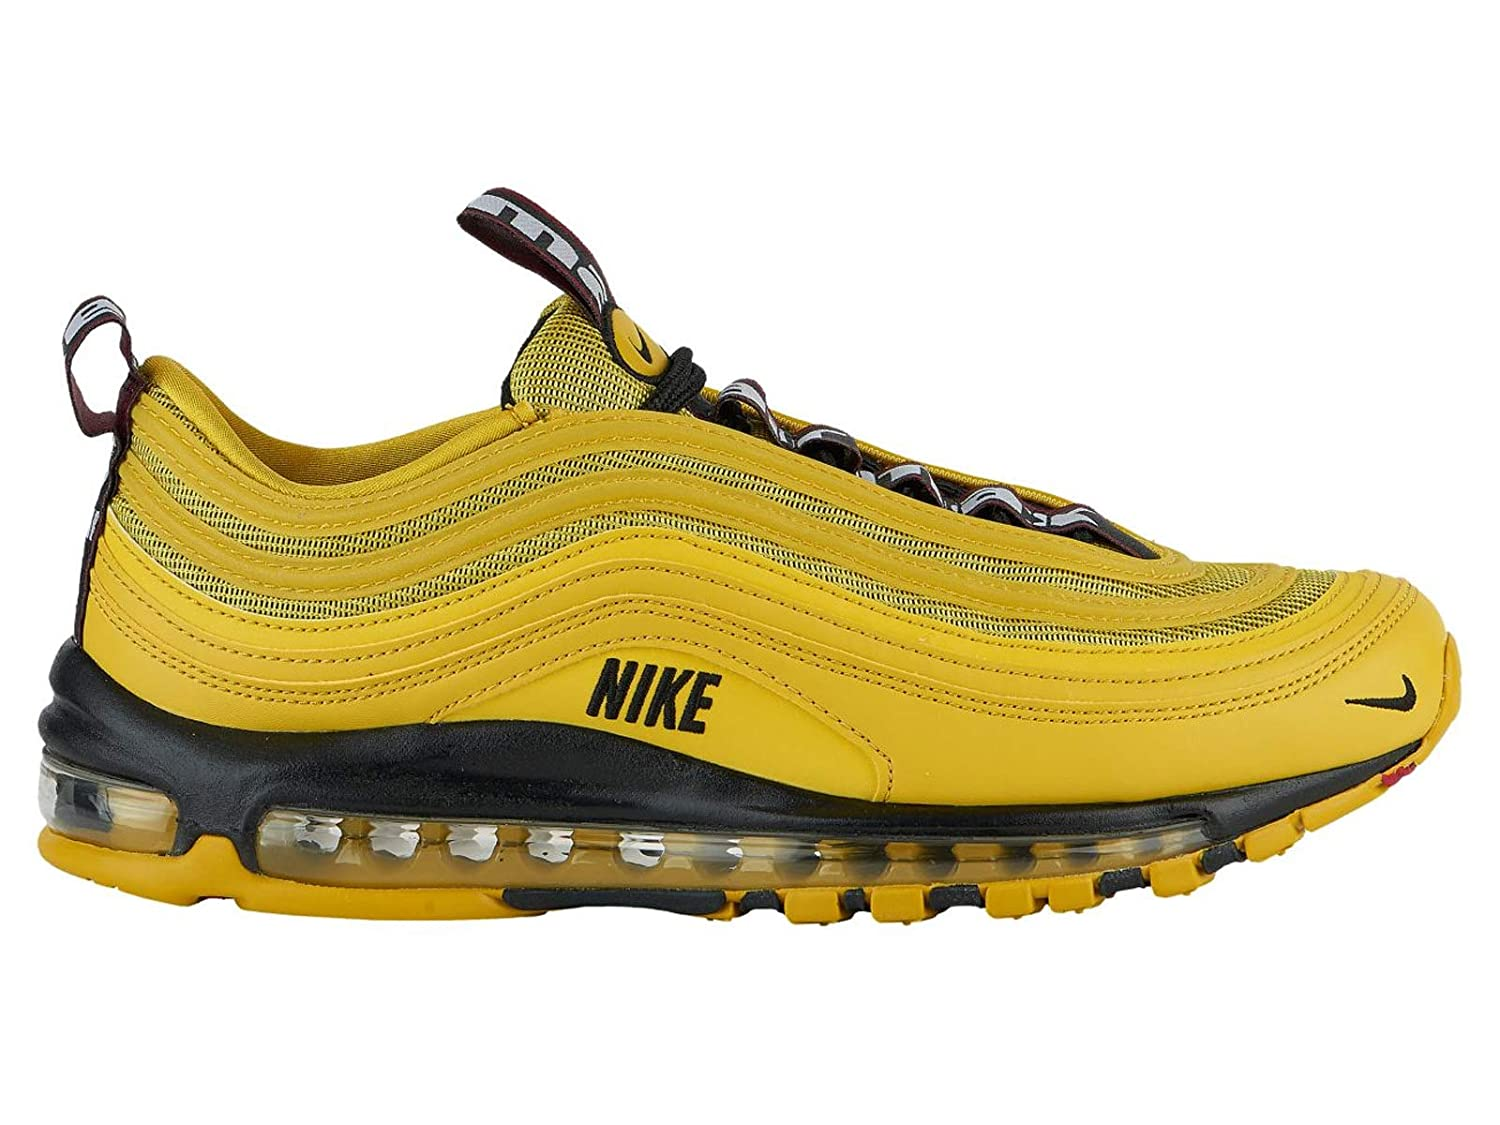 Nike Air Max 97 Bright Citron Black AV8368 700